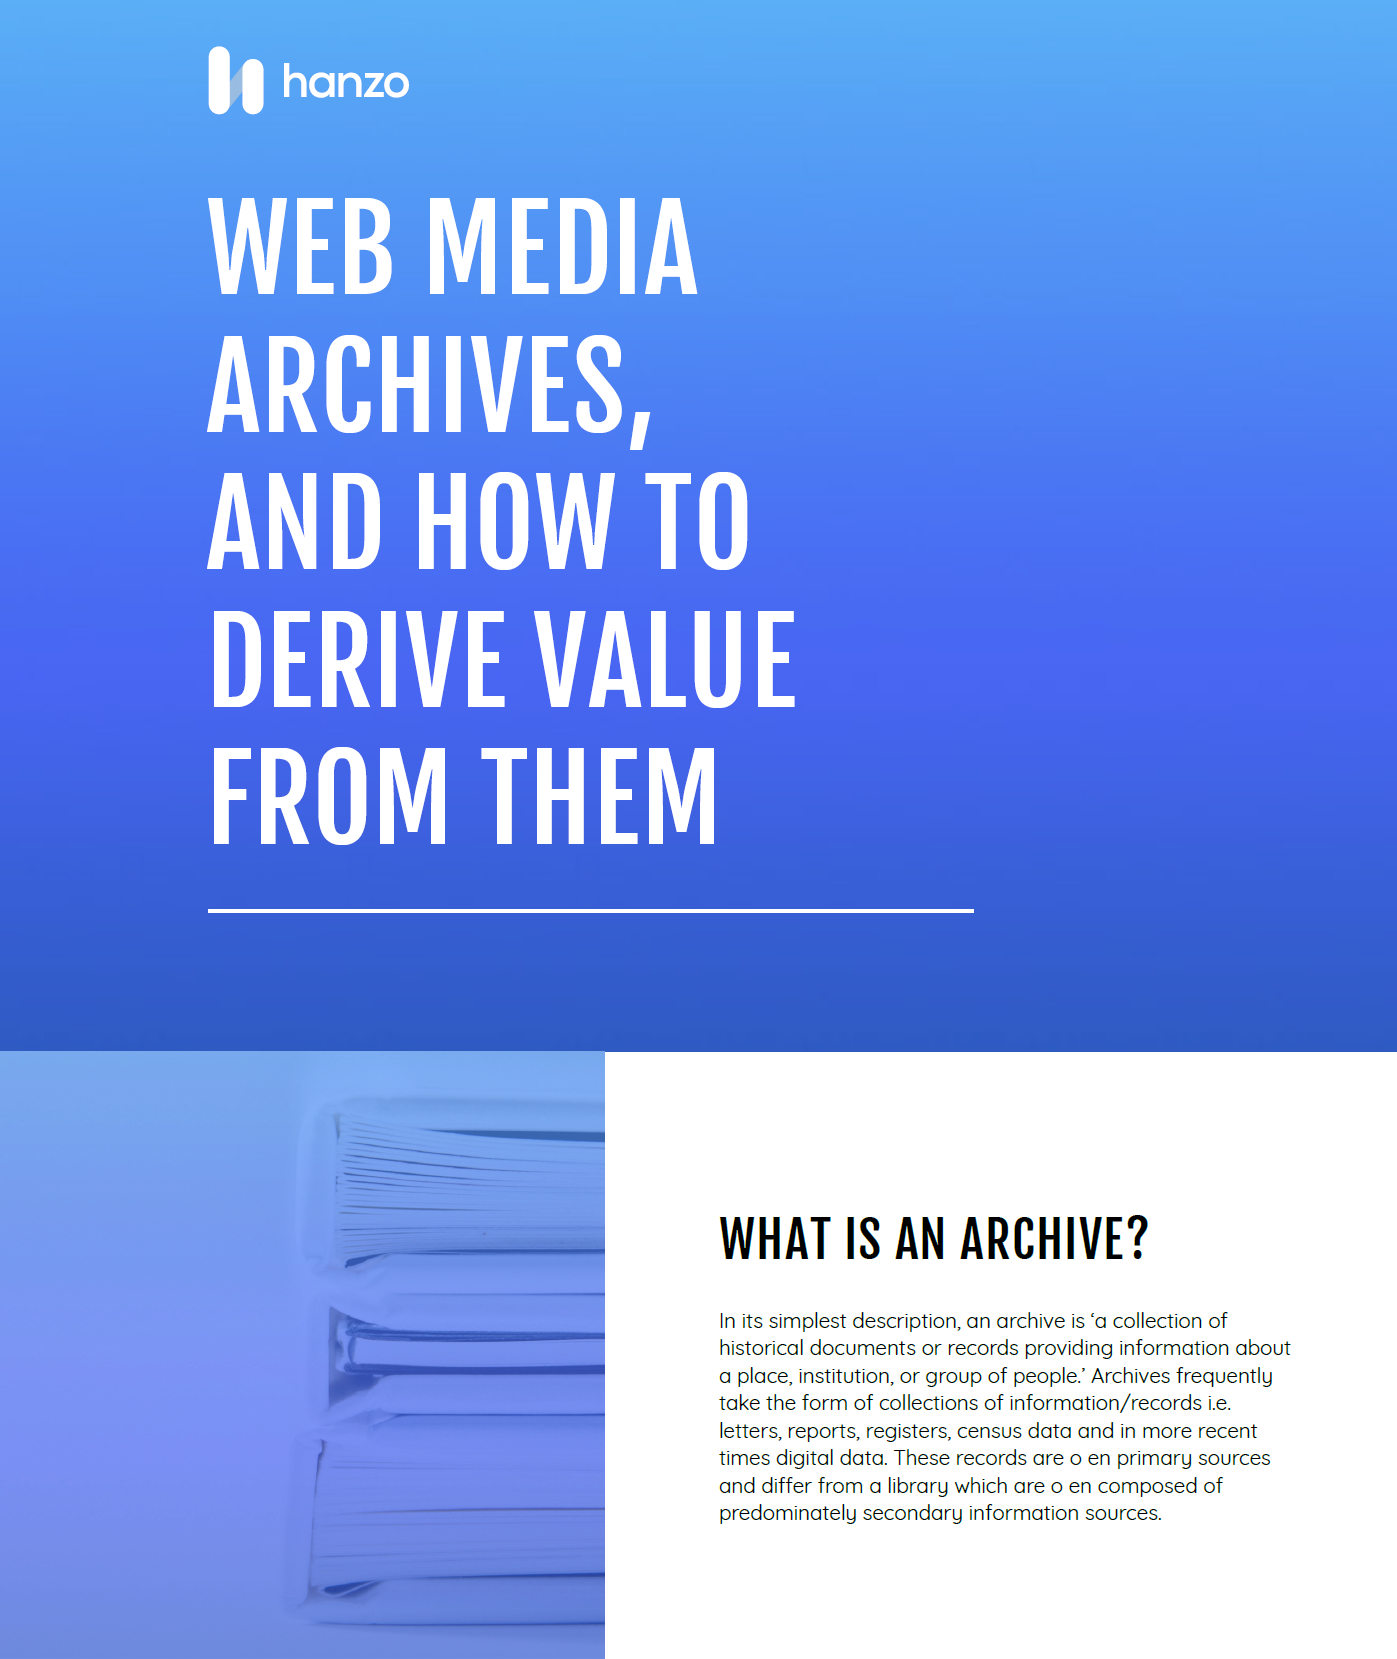 Web Media Archives and How to Derive Value from Them